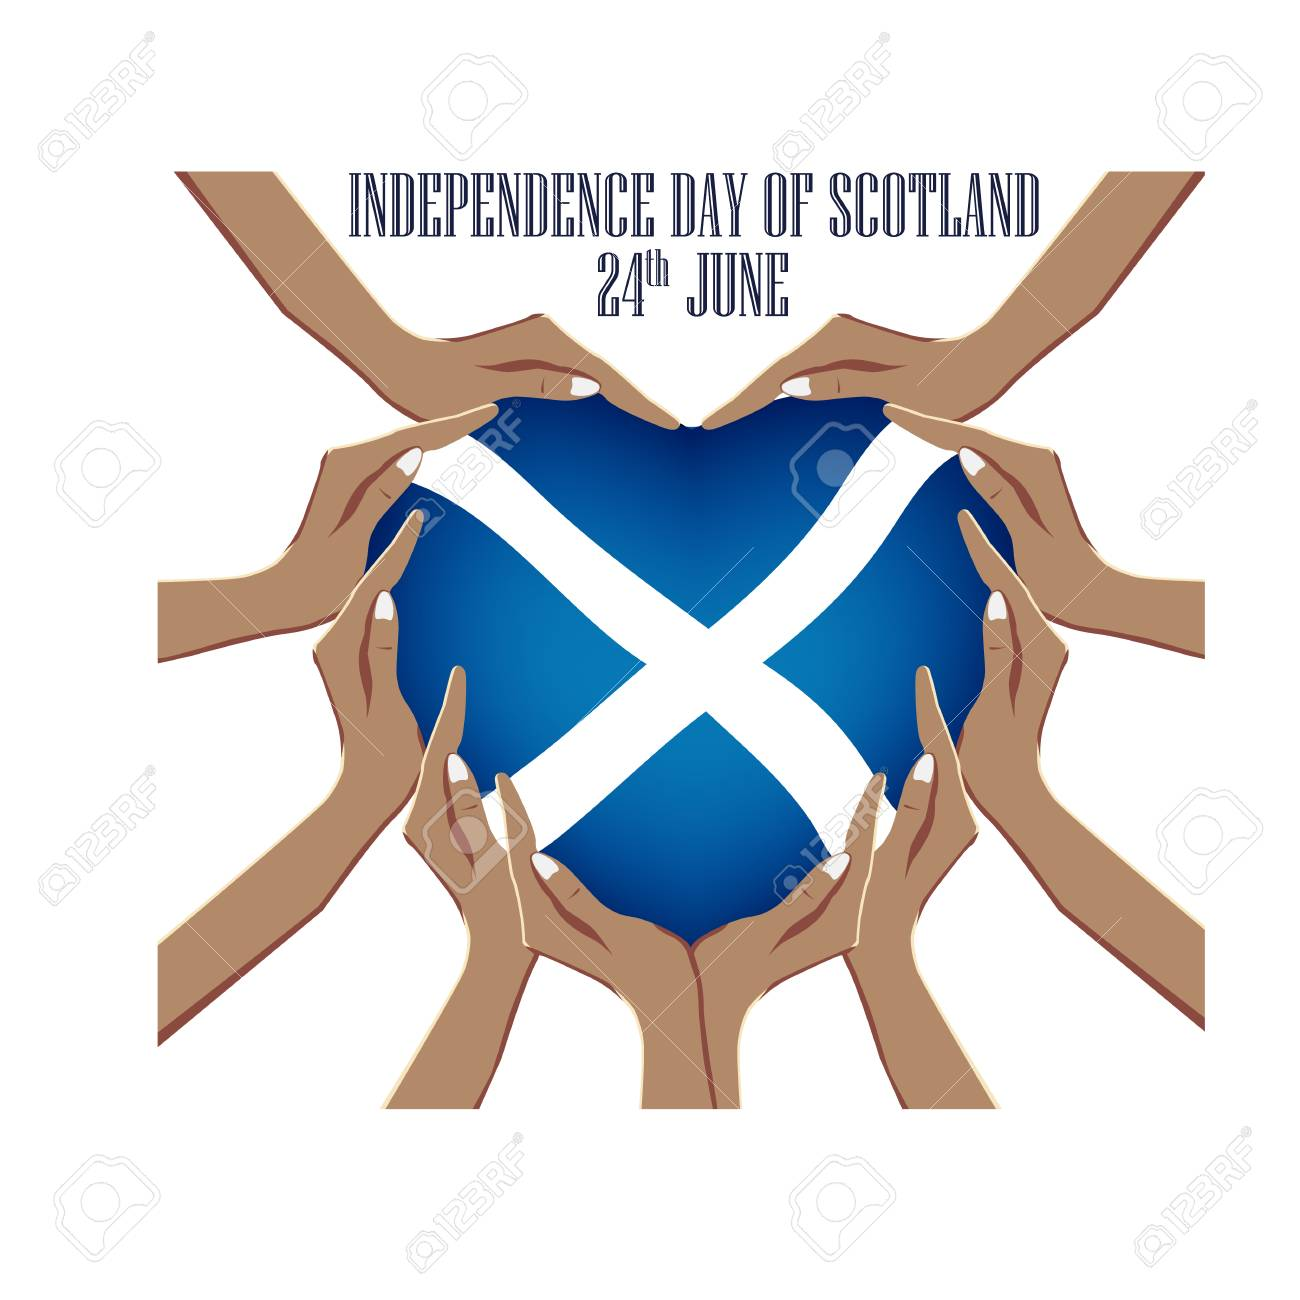 Independence Day of Scotland, vector illustration with hands in the shape of the heart, inside the national flag - 103984157